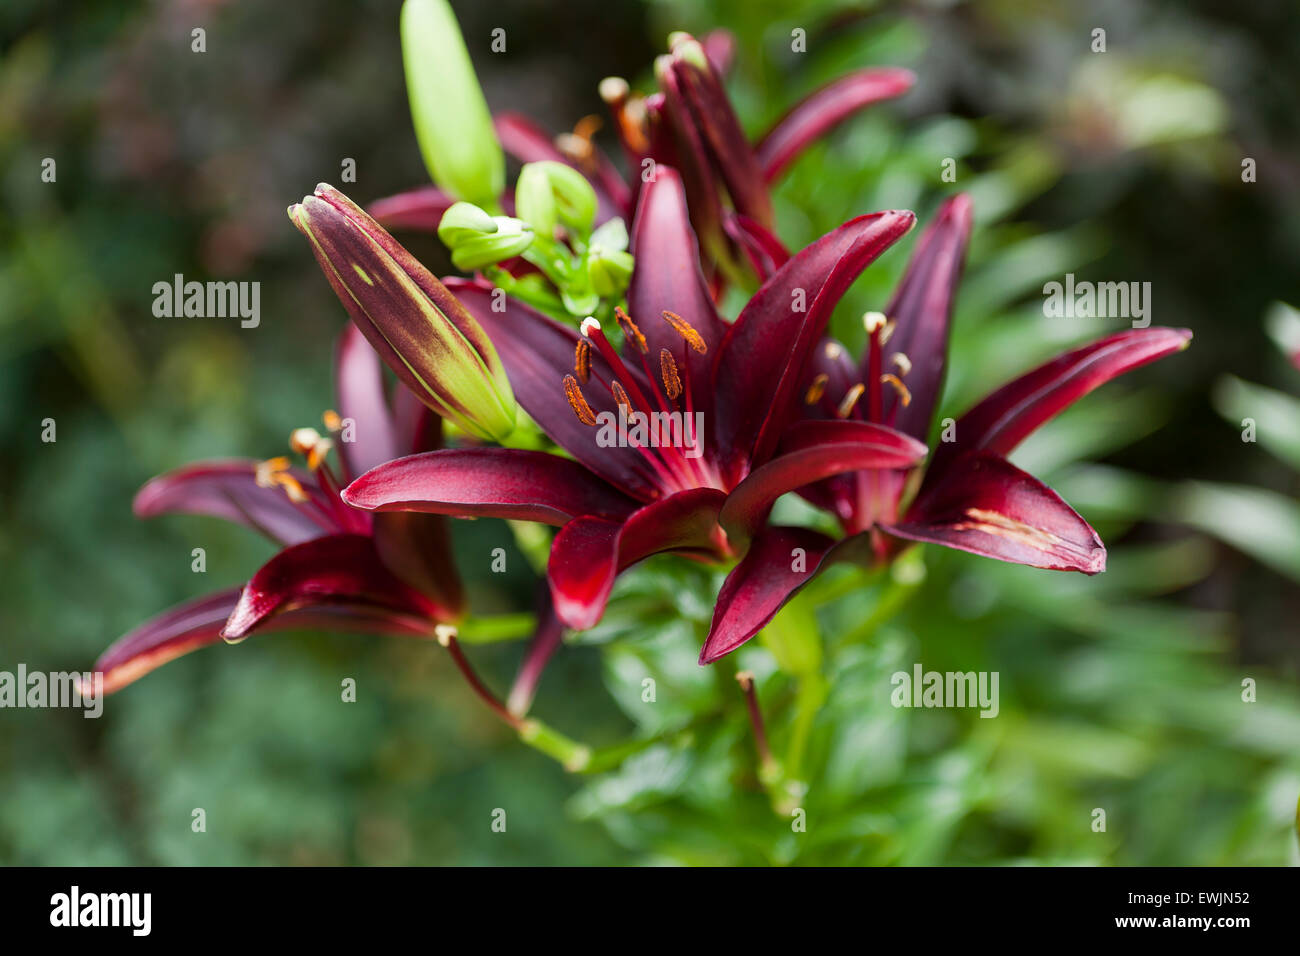 Landini Asiatic lily flowers (Lilium) - USA - Stock Image